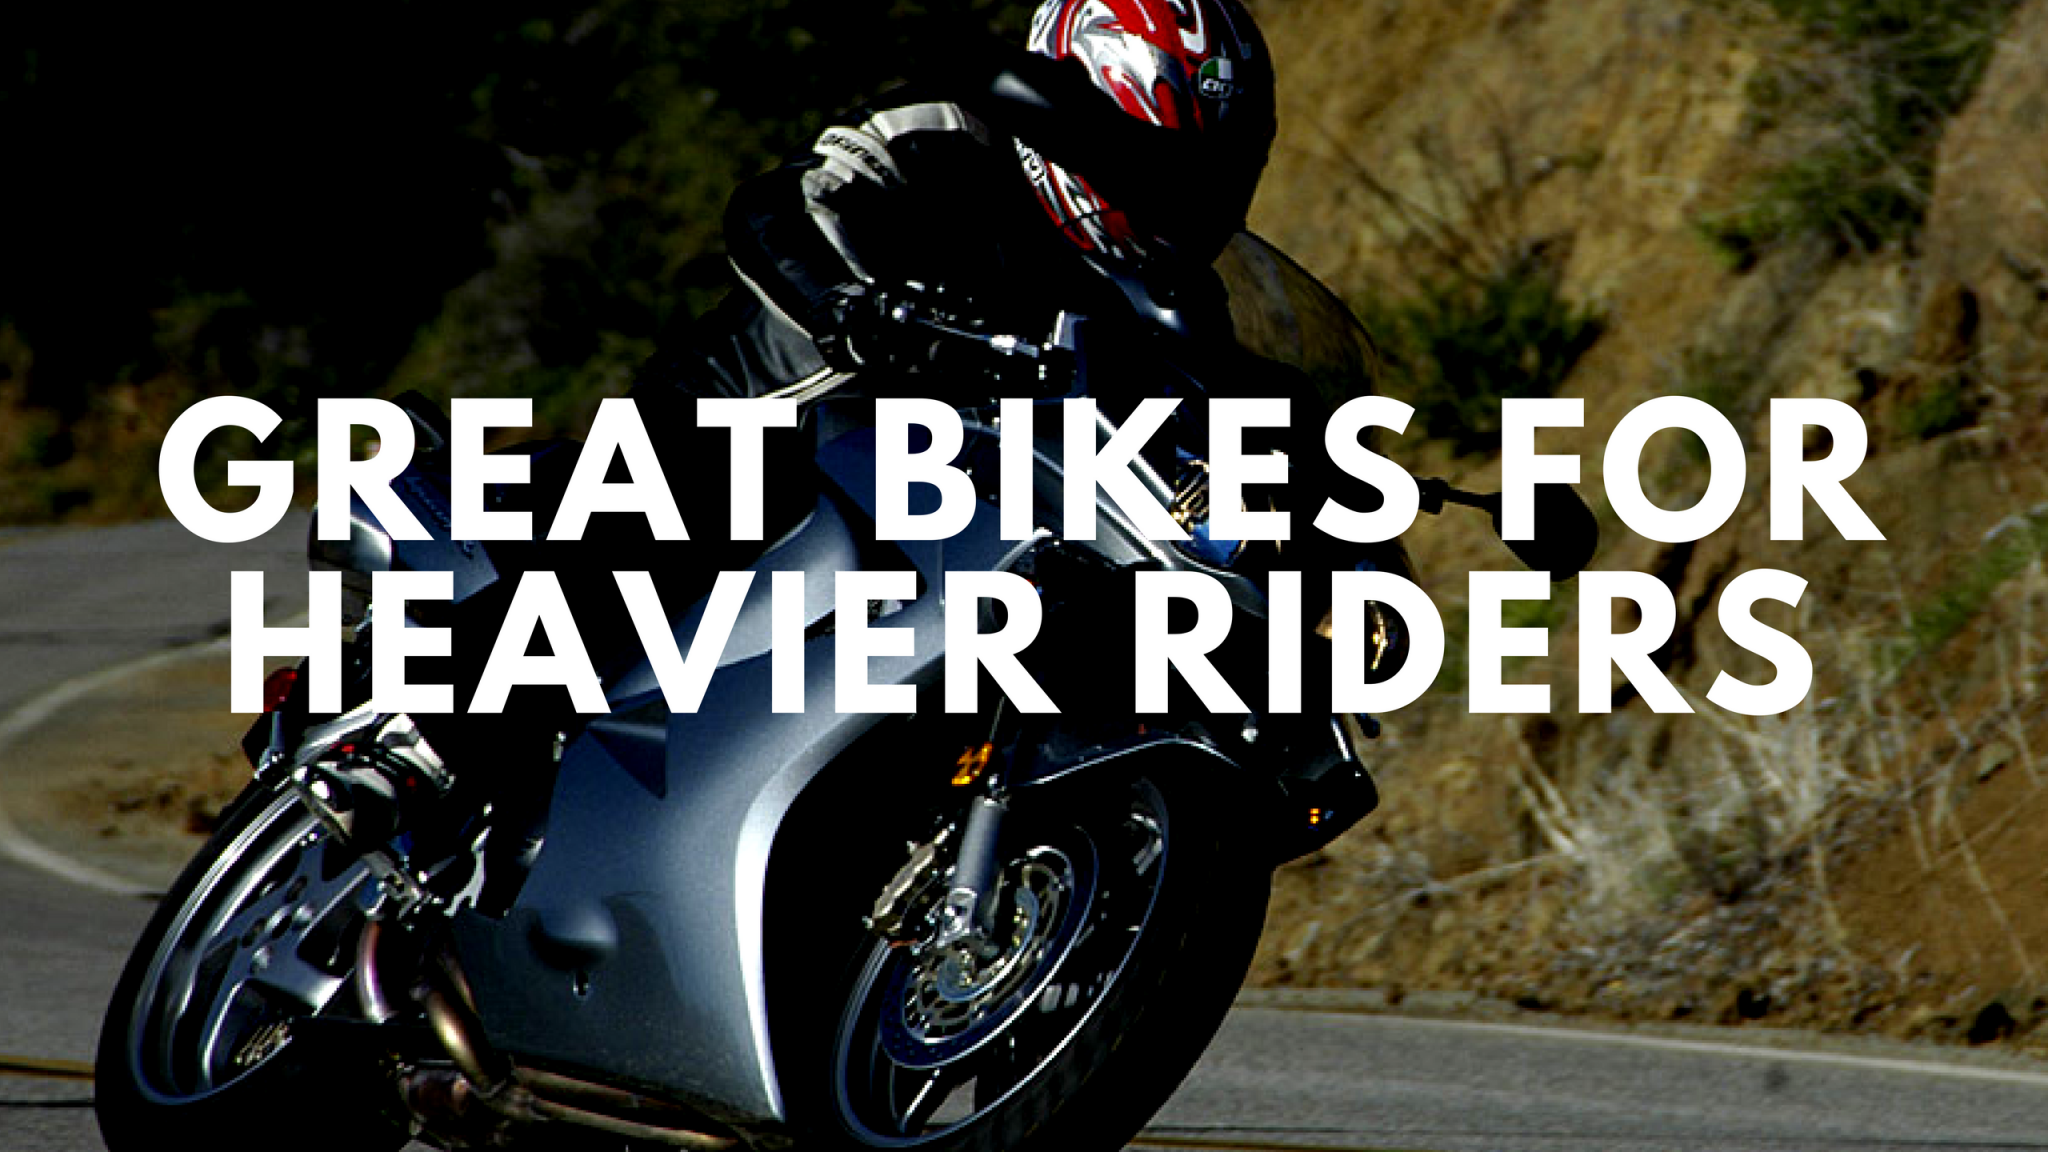 Starter Motorcycles for Heavier People